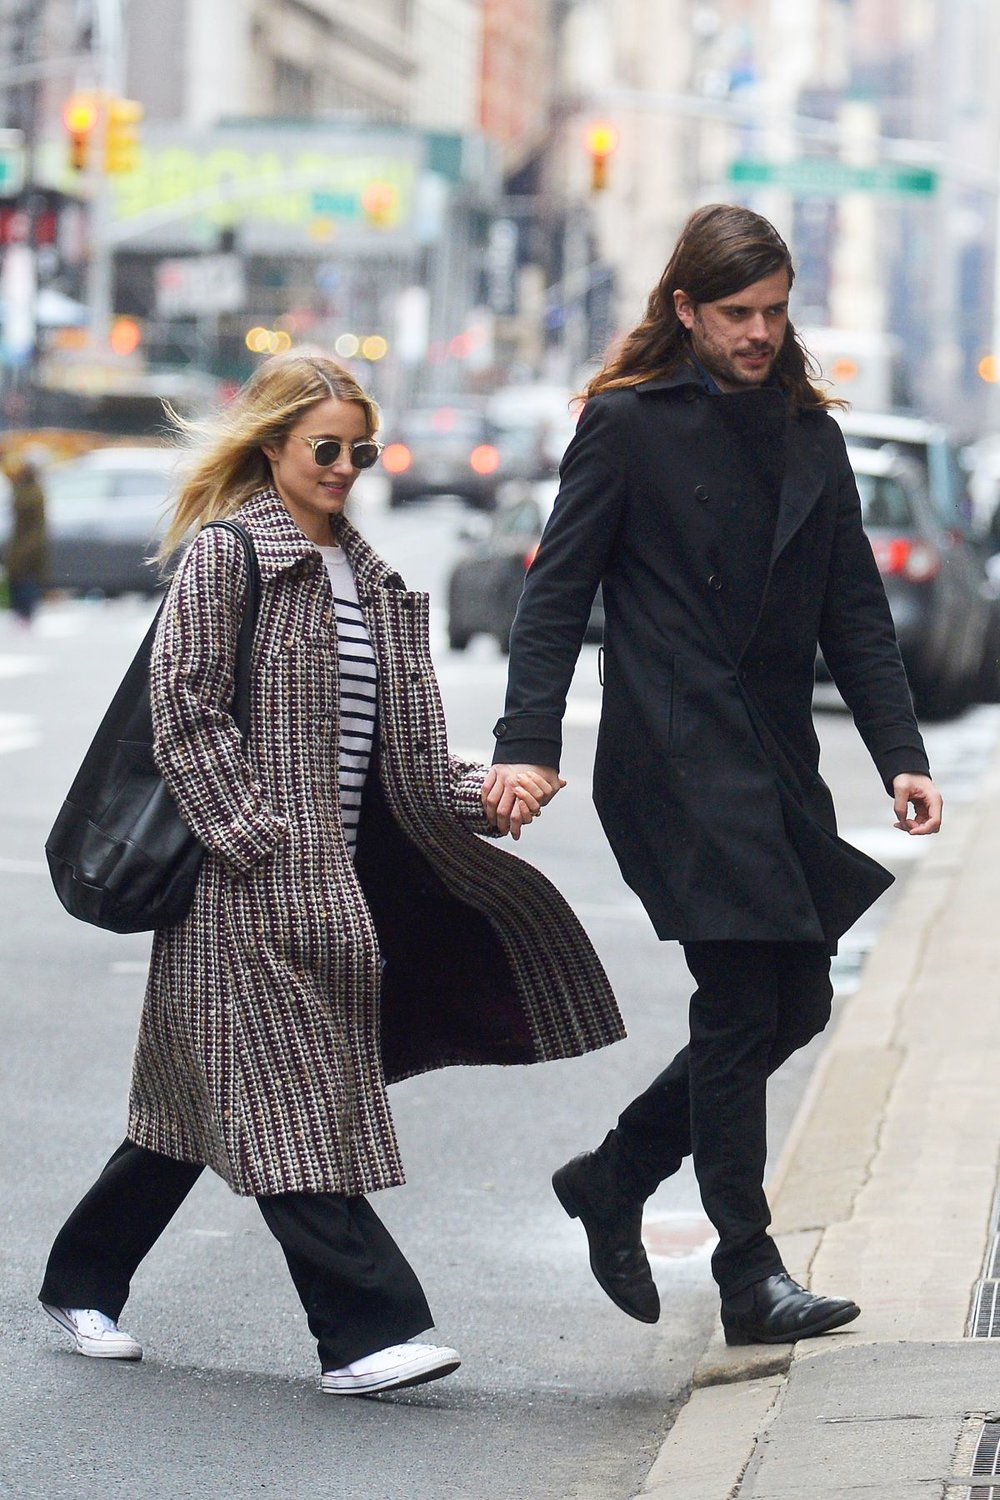 dianna-agron-and-winston-marshall-out-in-new-york-02-25-2018-2.jpg